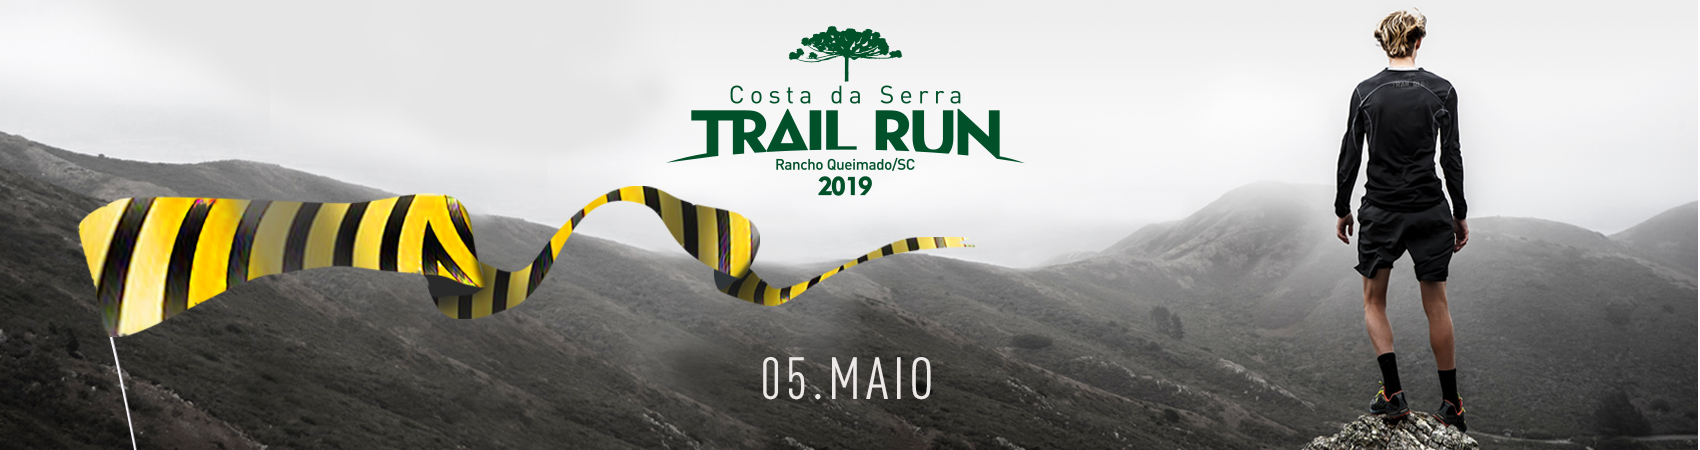 COSTA DA SERRA TRAIL RUN 2019